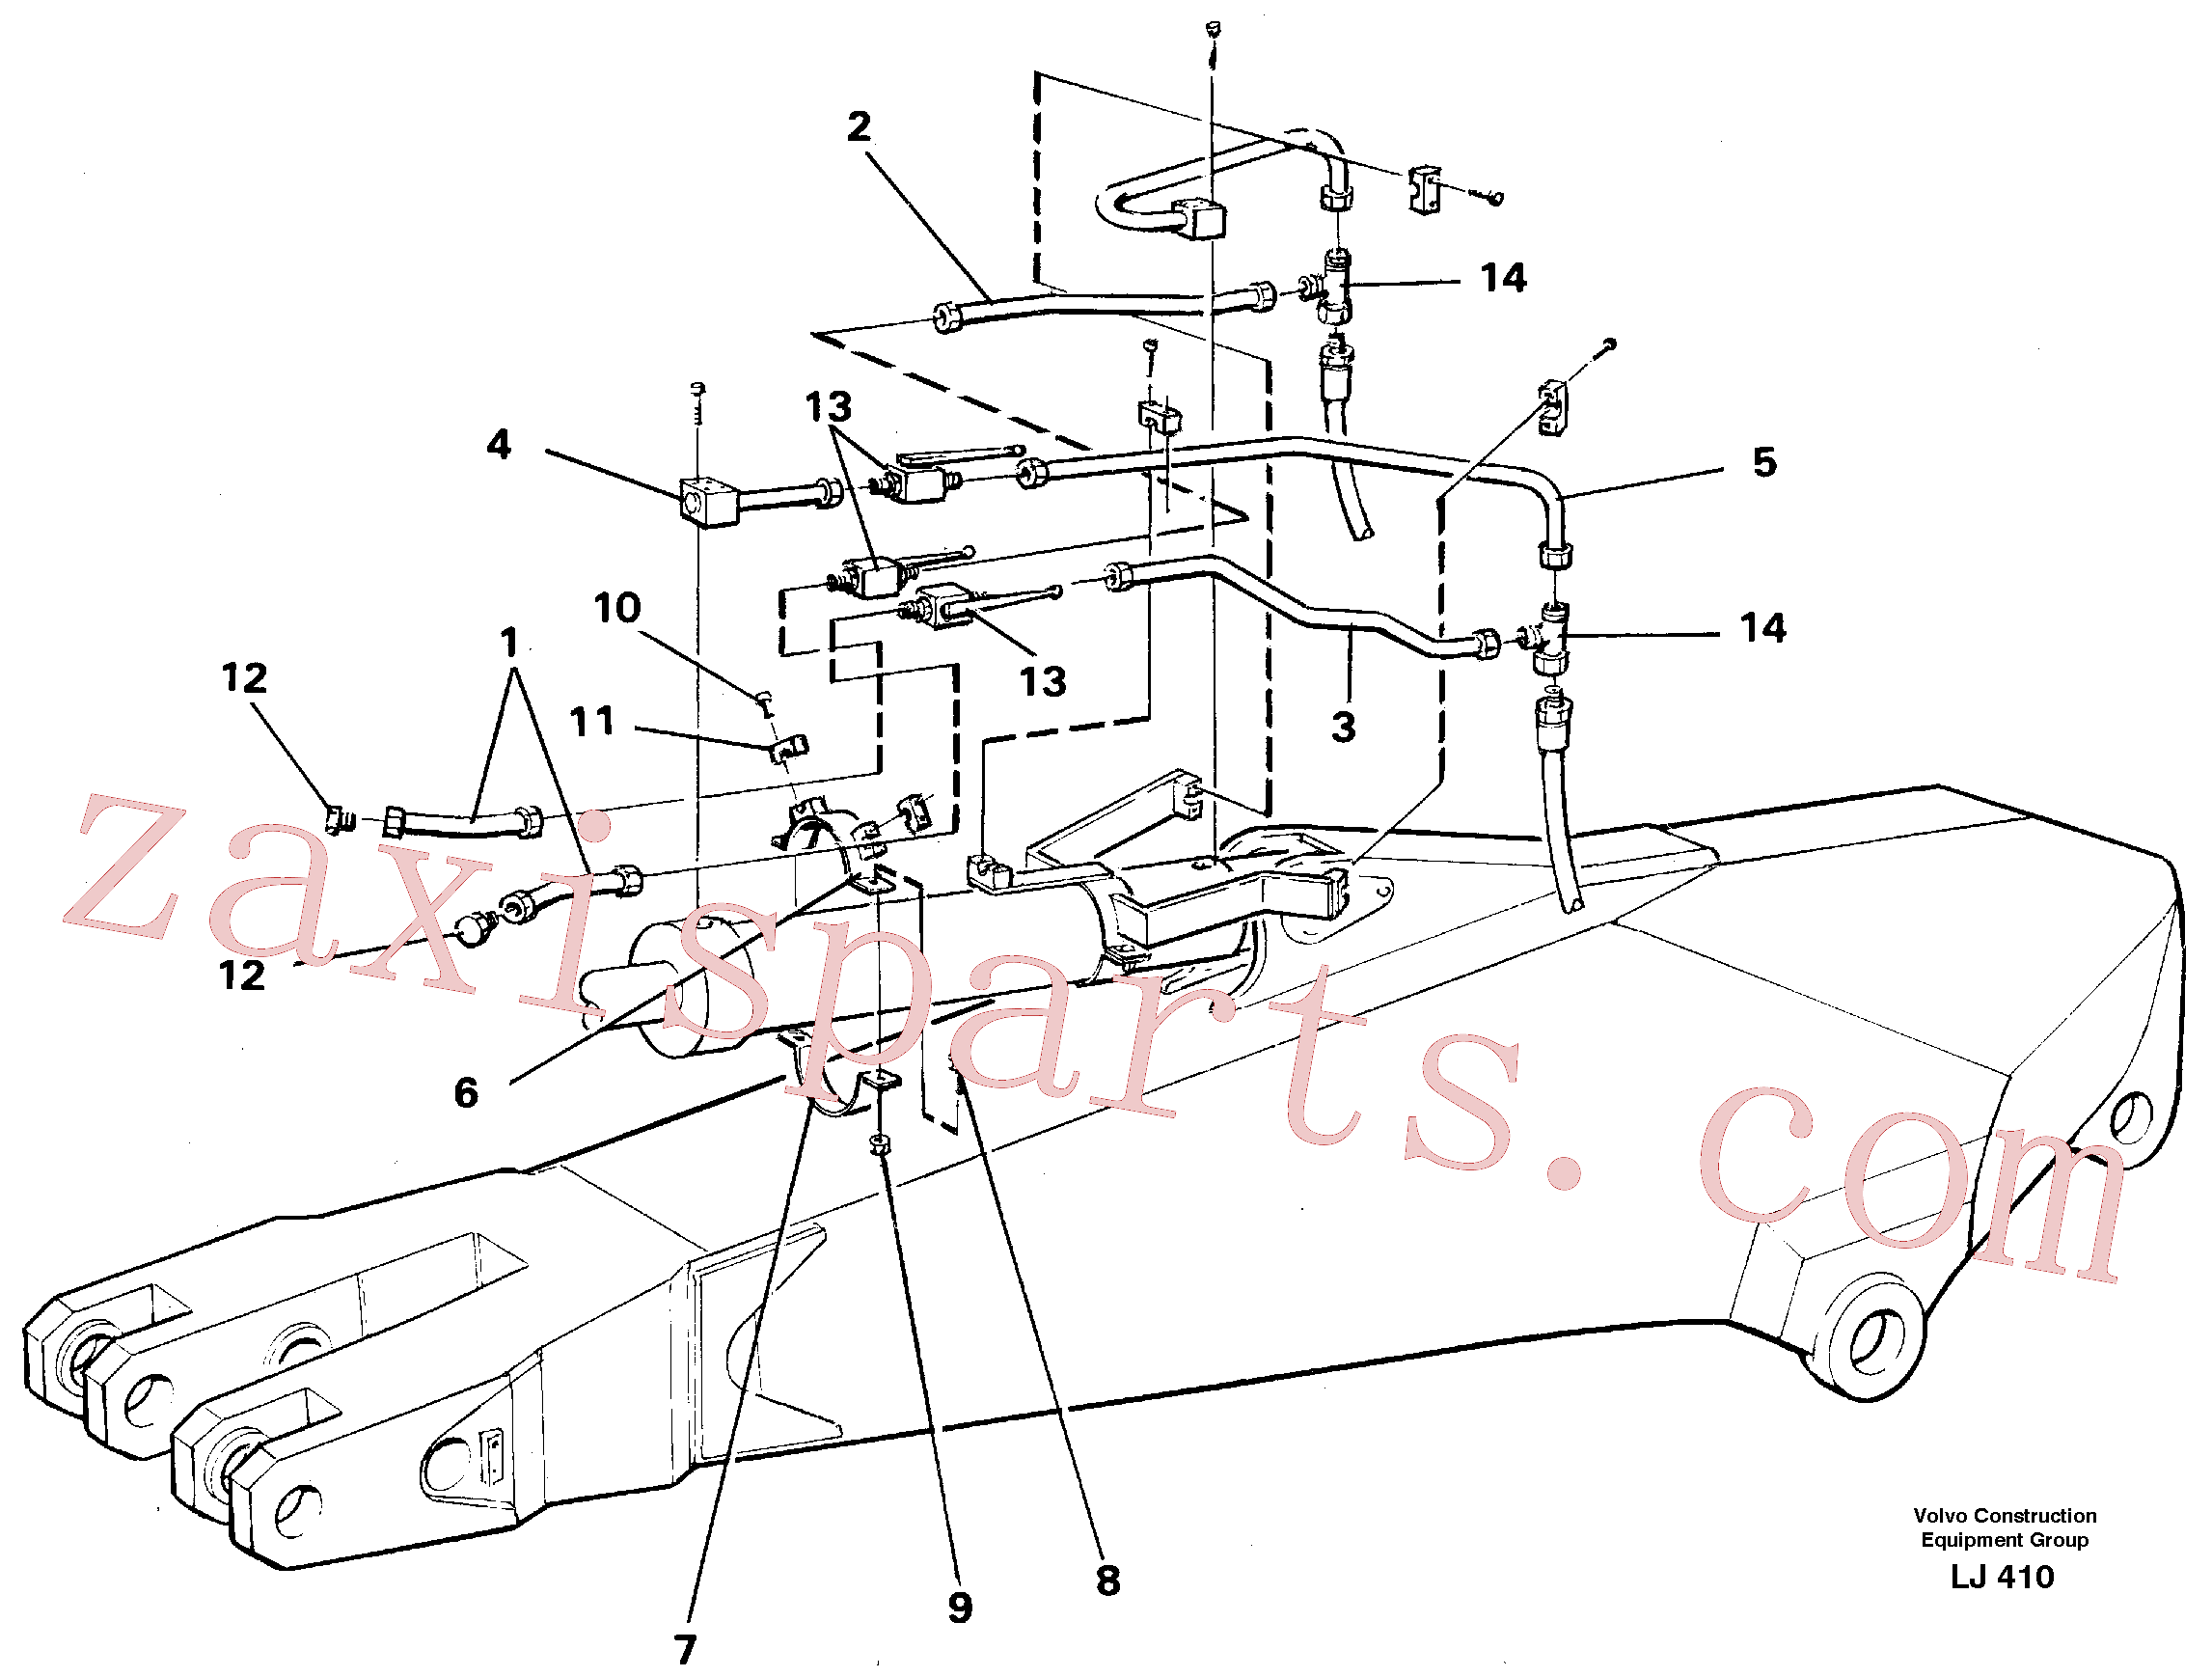 VOE14249975 for Volvo Parallel connected grab hydraulics incl. shut-offcocks on dipper arms.(LJ410 assembly)